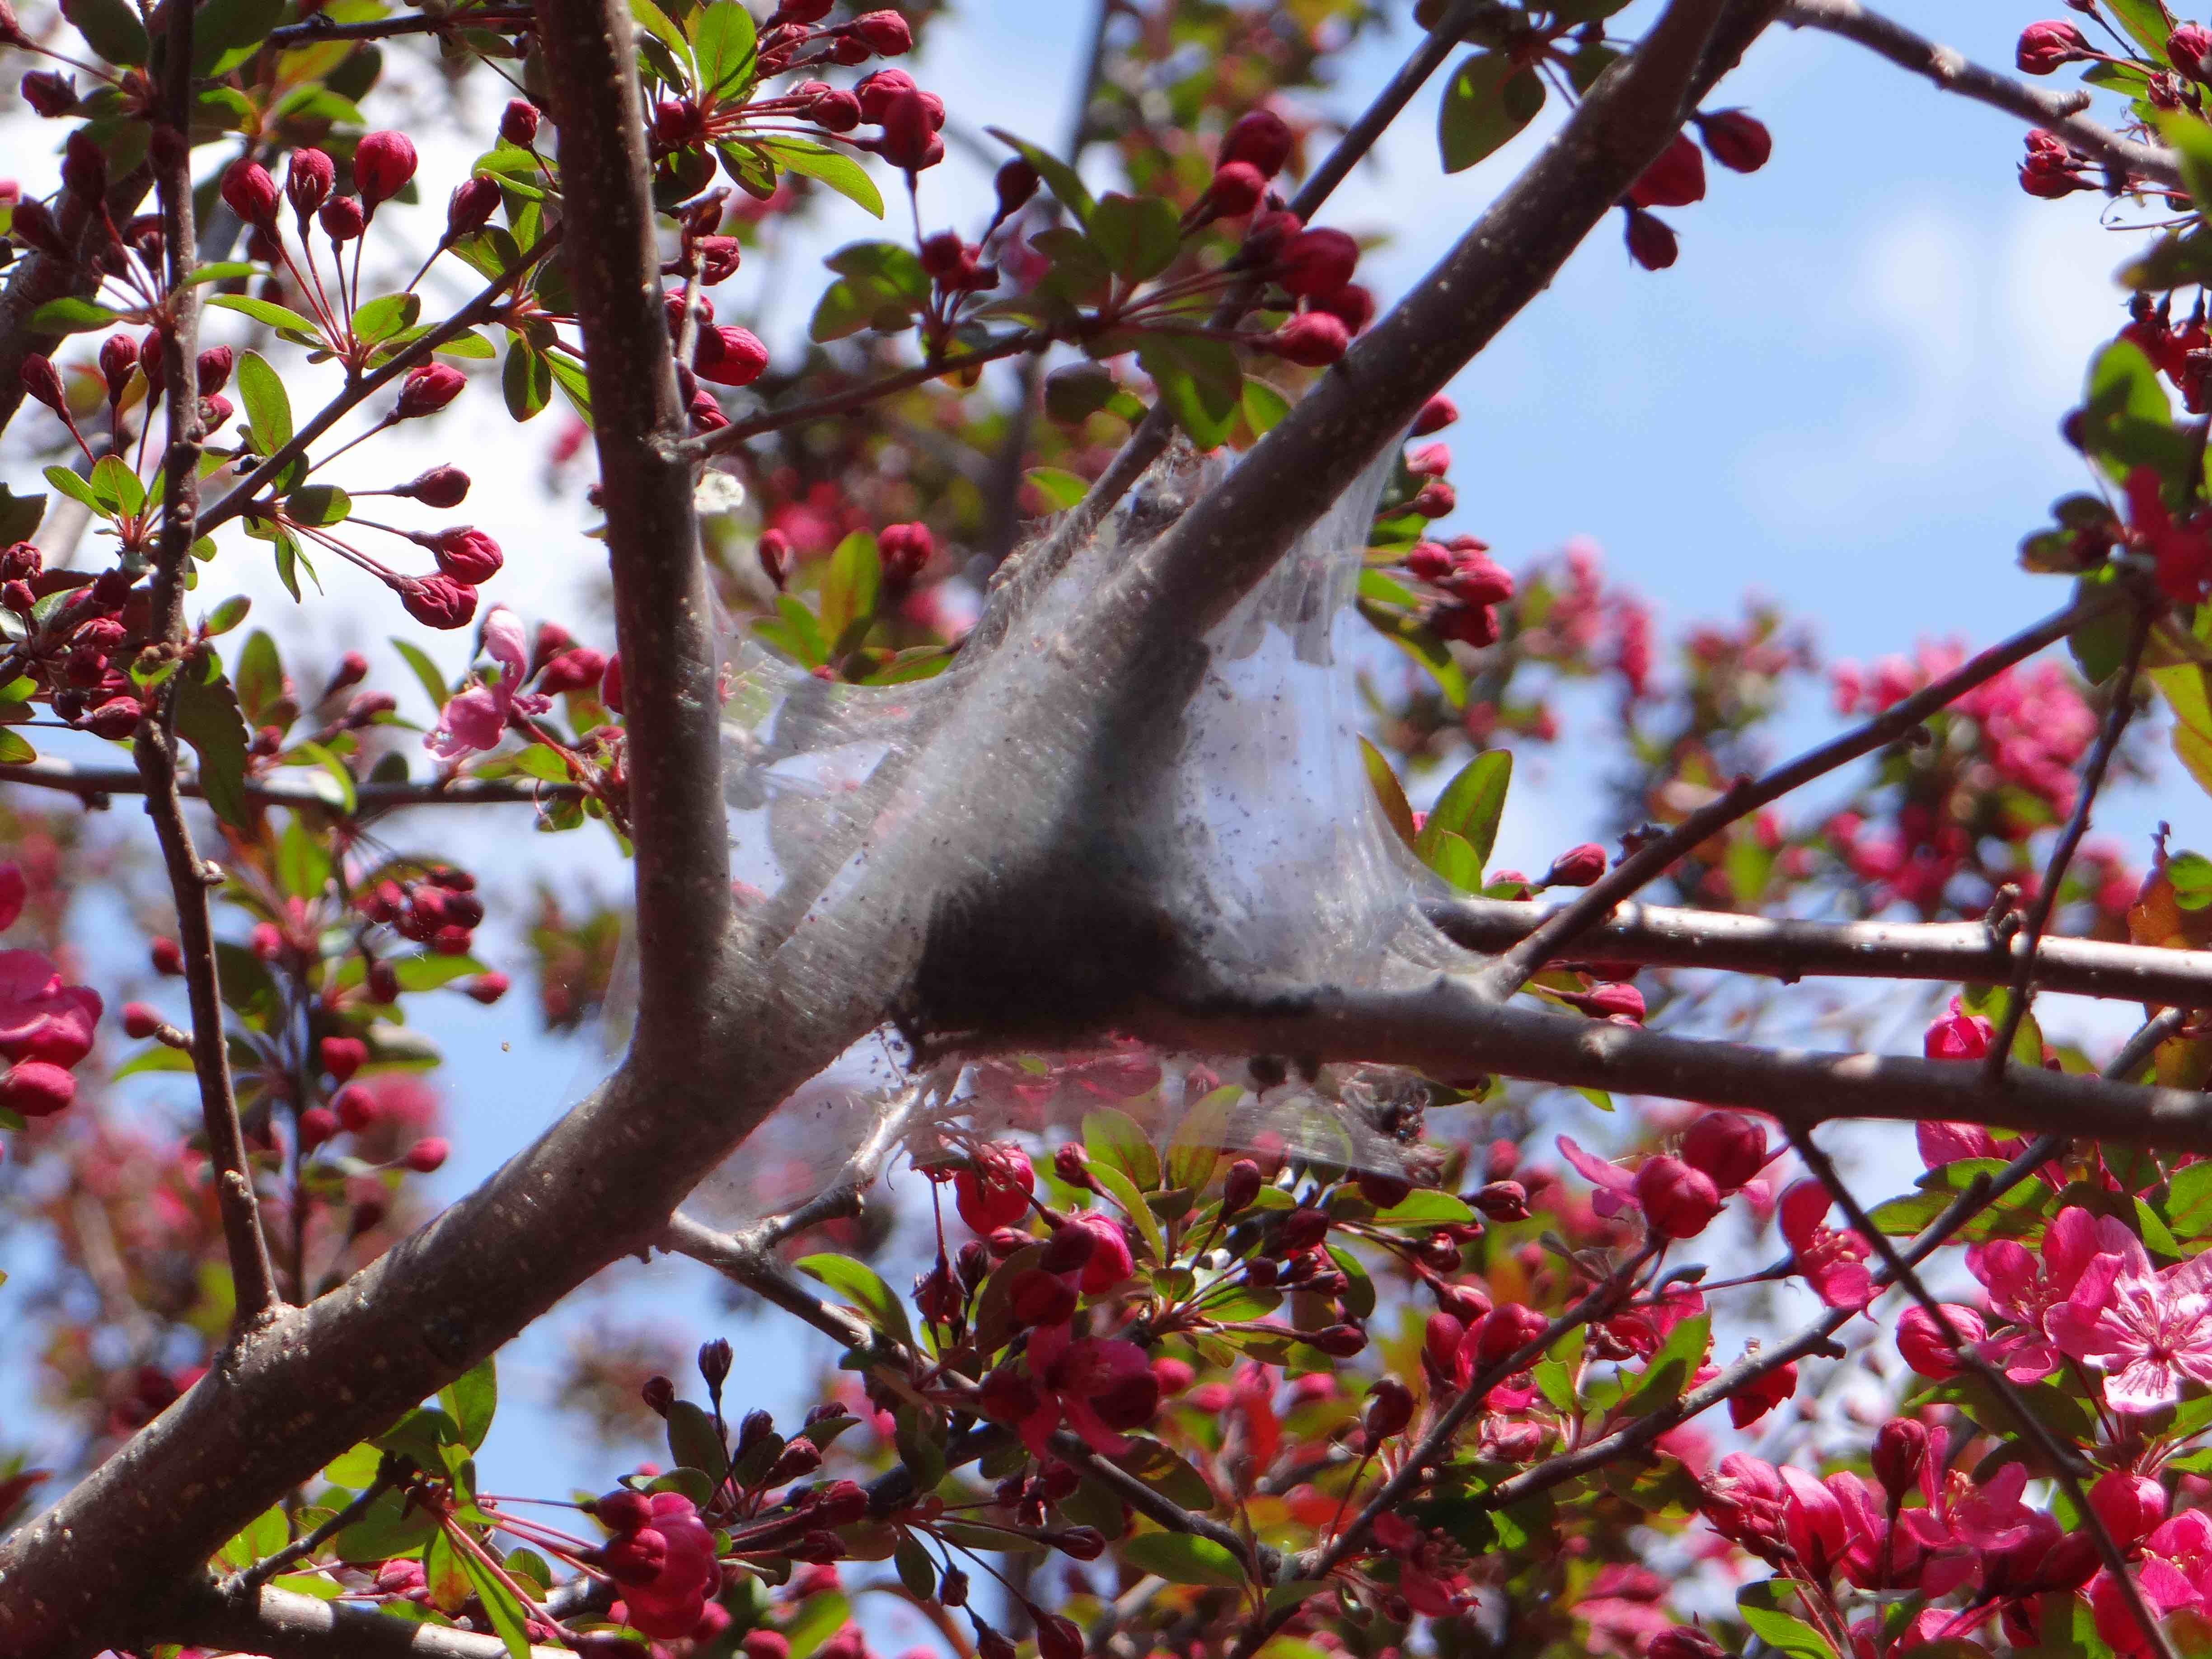 Eastern tent caterpillar tent in flowering crab apple tree. Photo: SD Frank